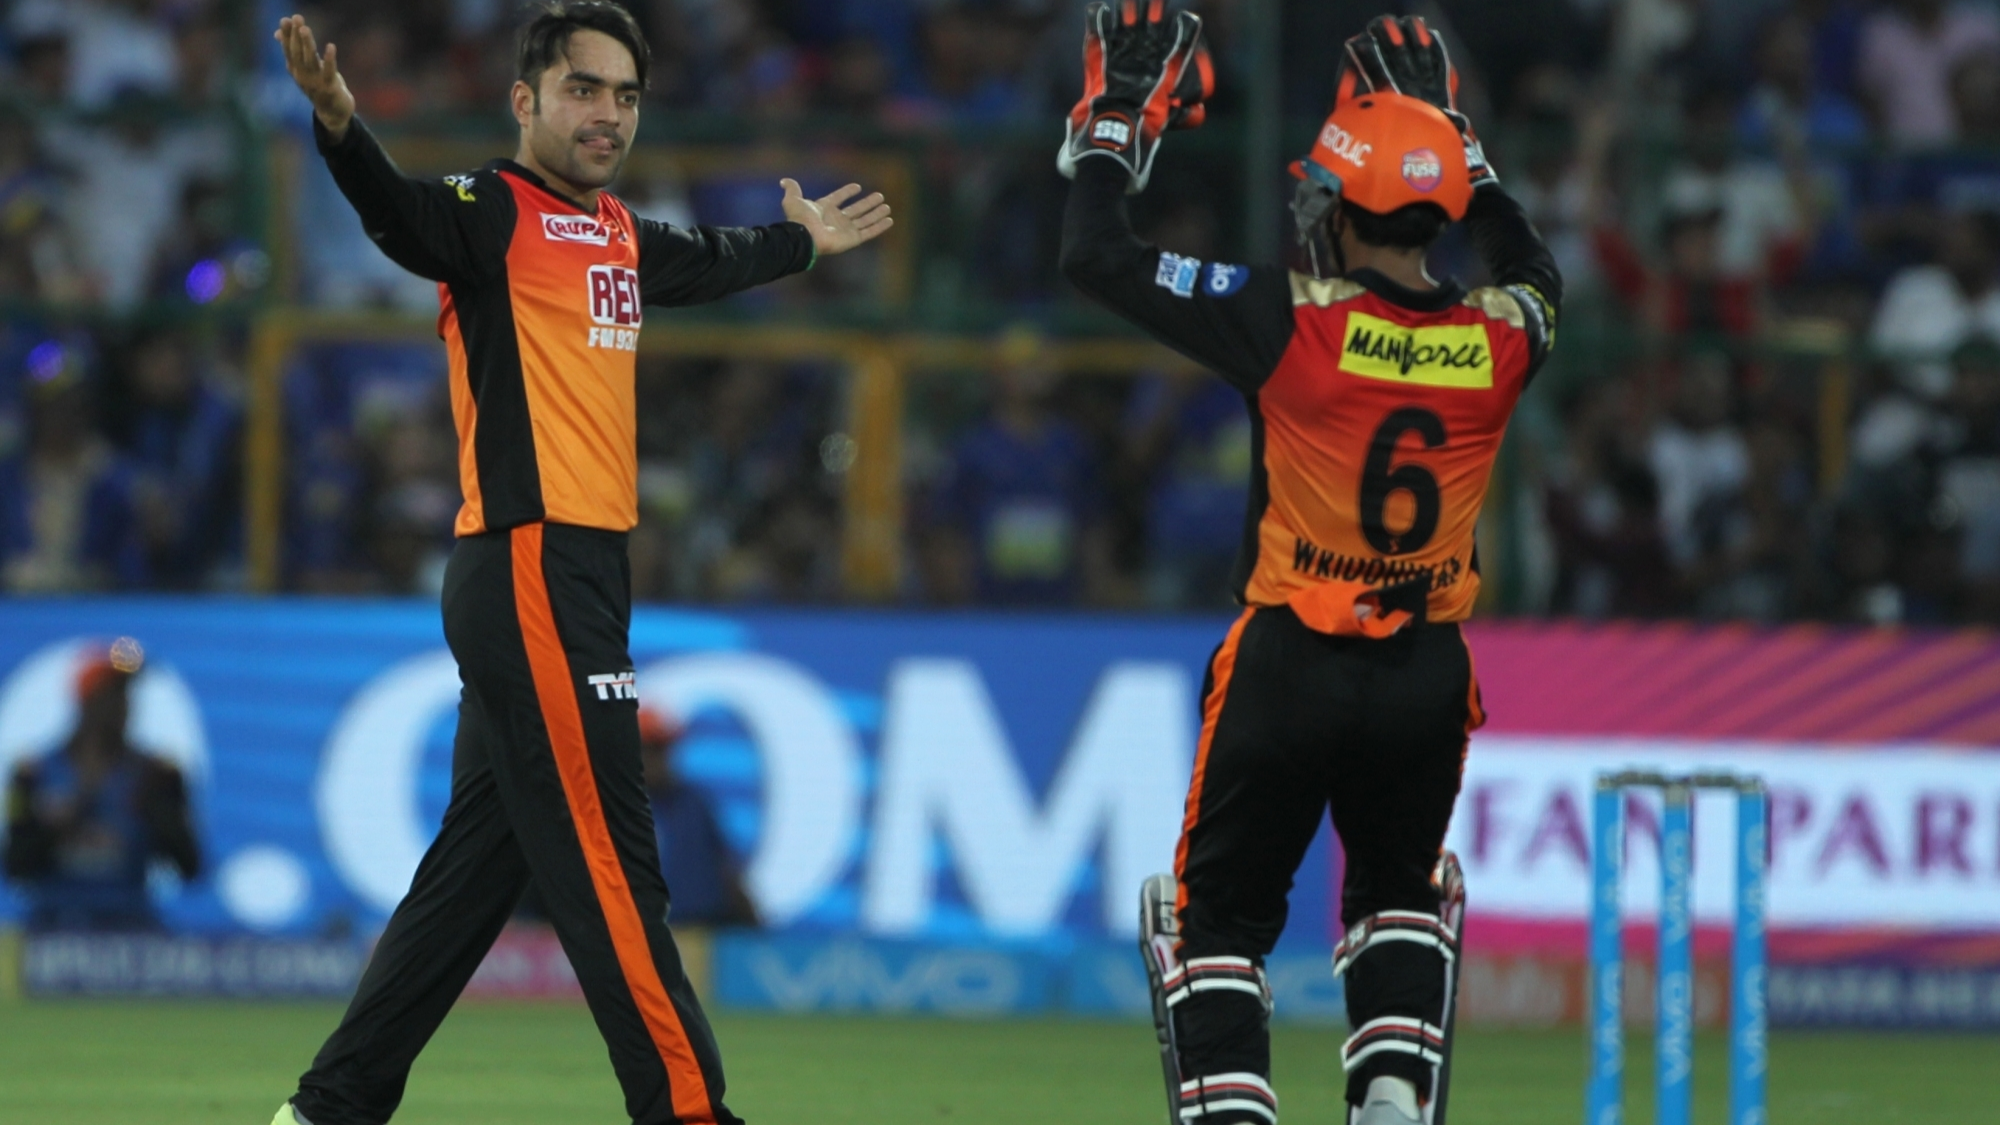 IPL 2018: Rashid Khan shows compassion by dedicating his 'Man of the Match' award to Afghanistan blast victims